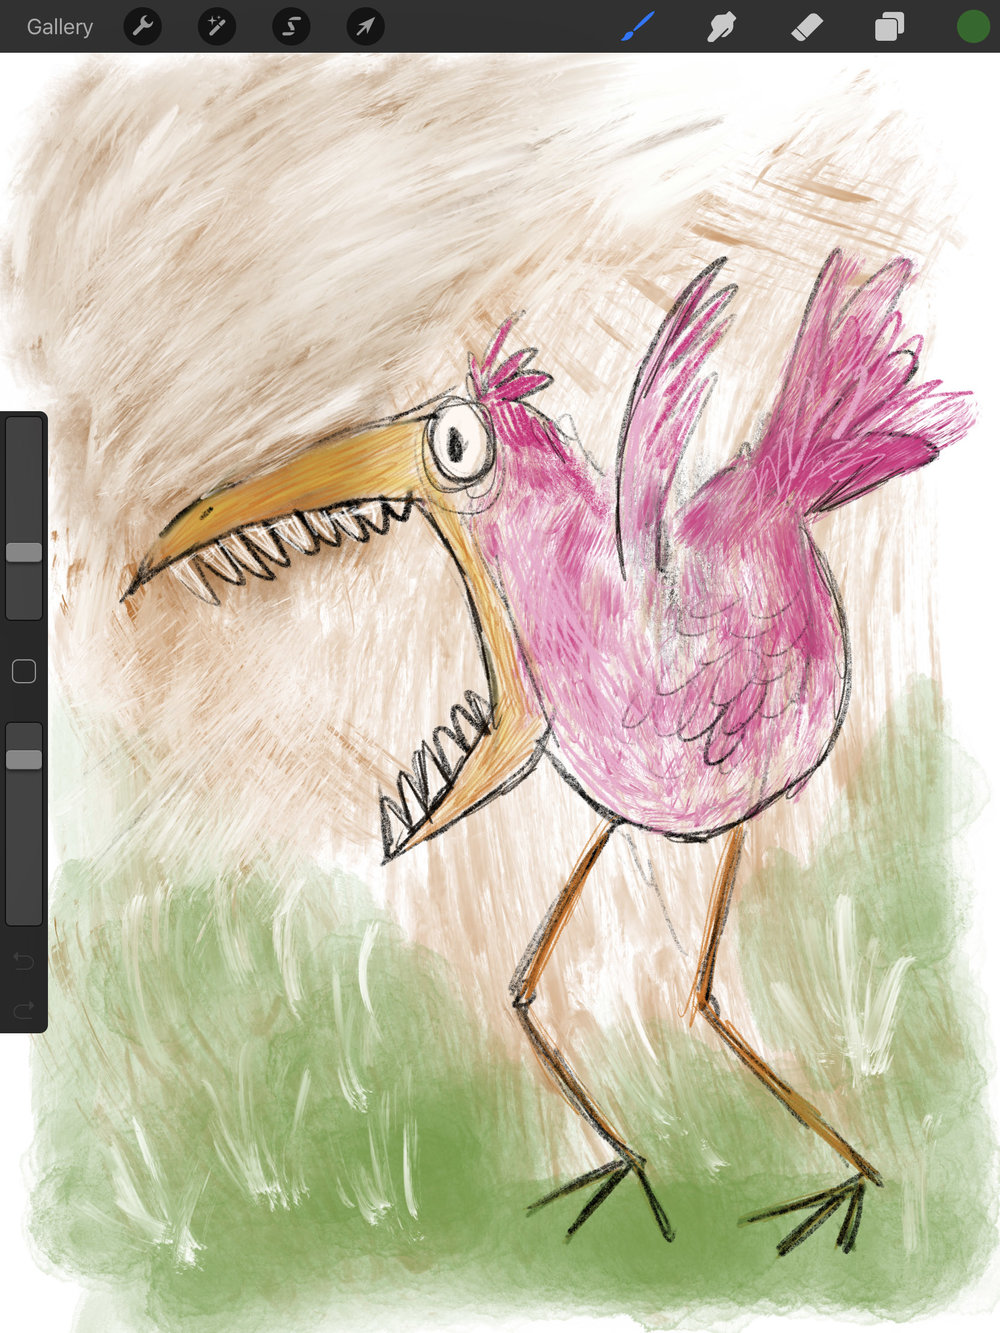 Awesome natural media drawing and painting tools that work great with the Apple Pencil. Even when drawing 'attack birds'.